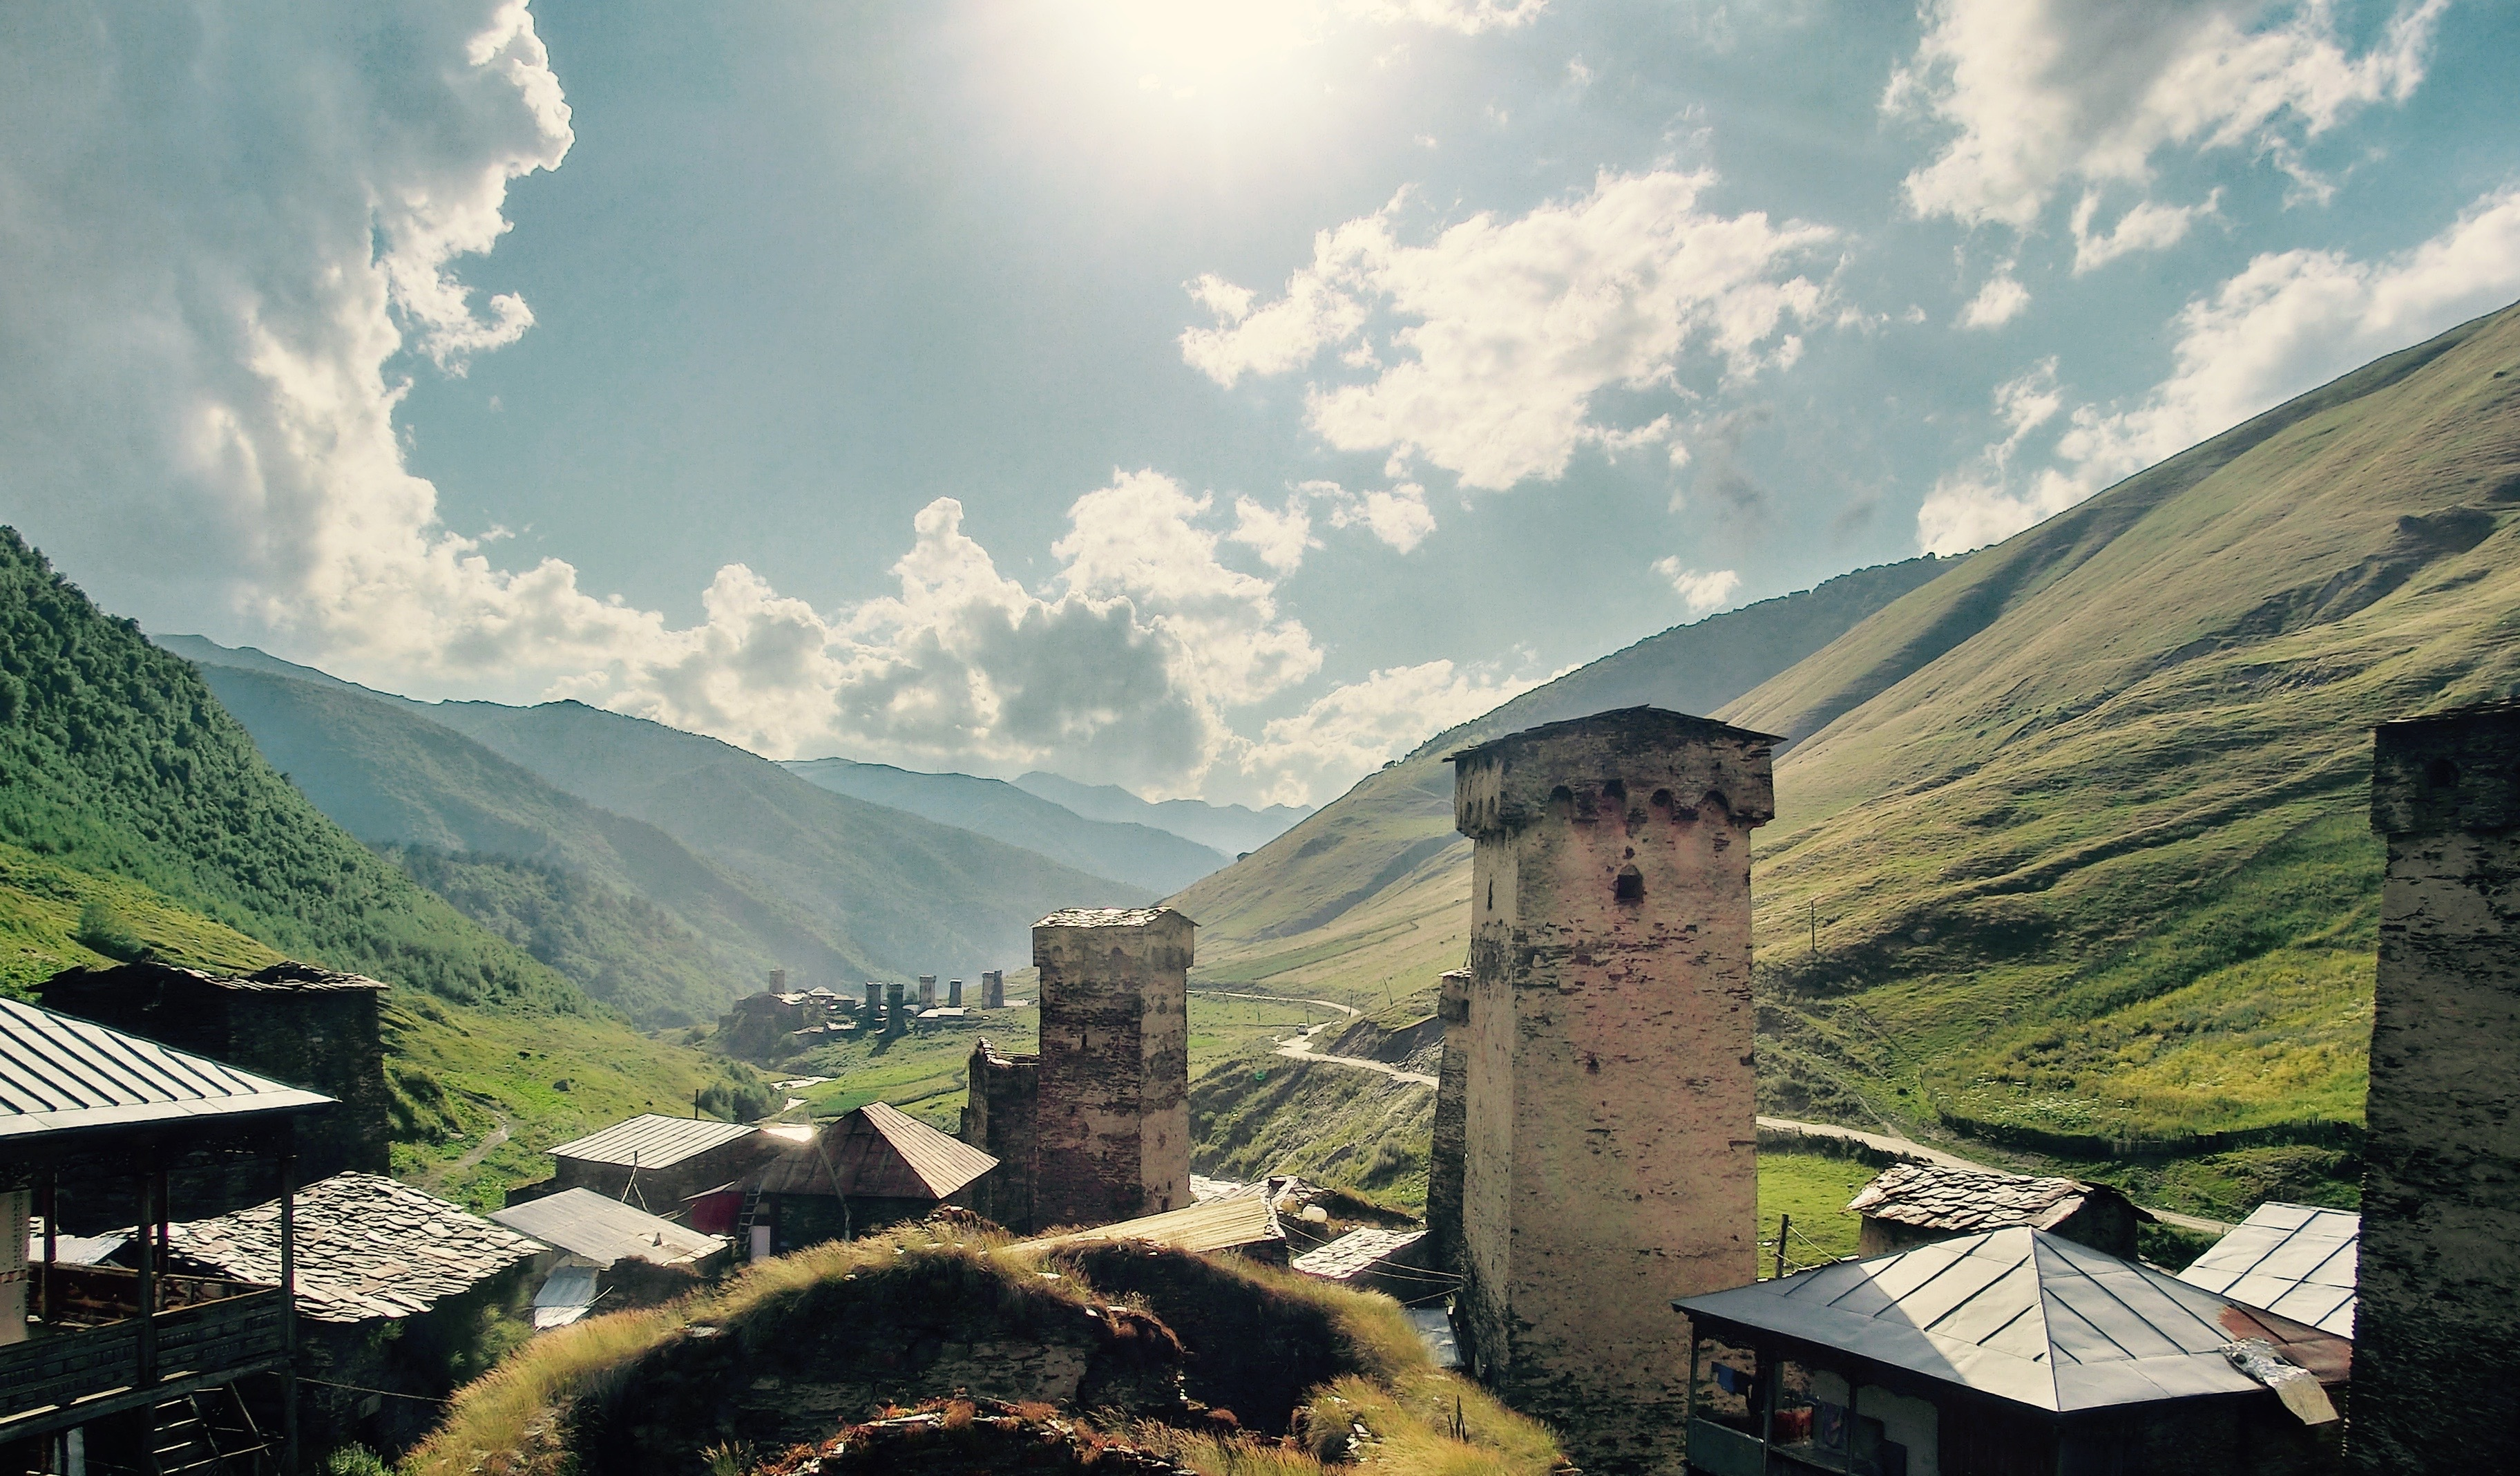 Svaneti; Ushguli; Georgia; Towers; Mountains; Caucasus; Trekking